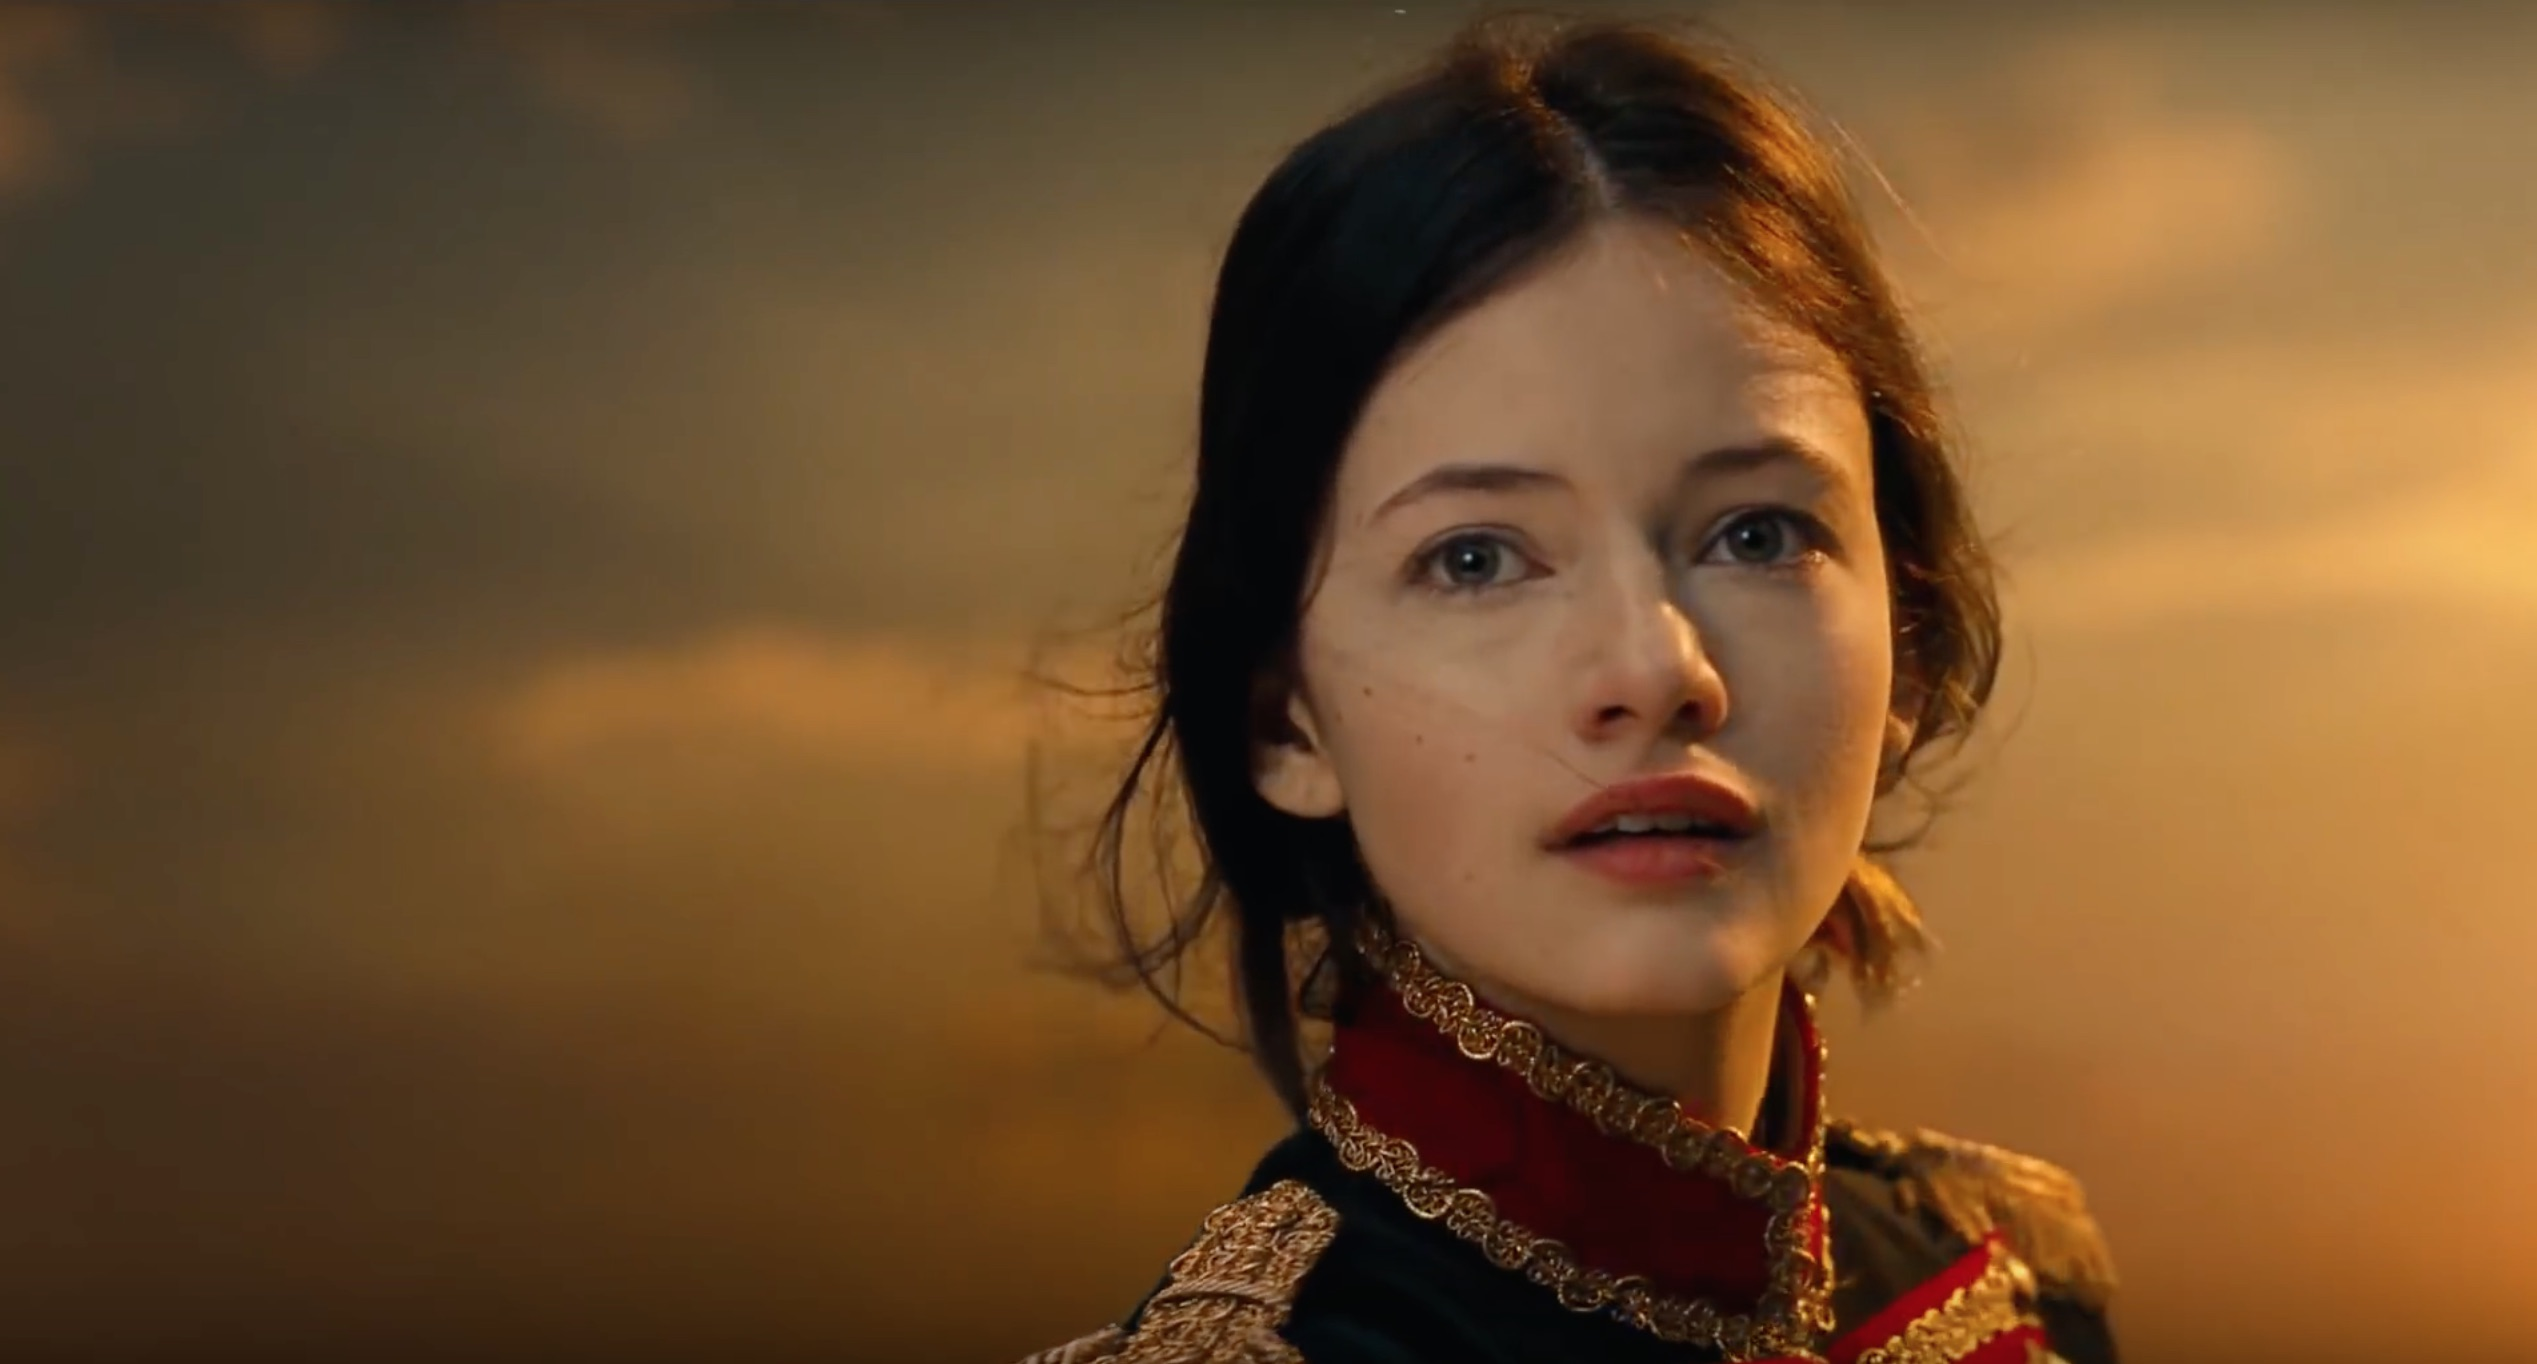 Mackenzie Foy in The Nutcracker and the Four Realms (2018)